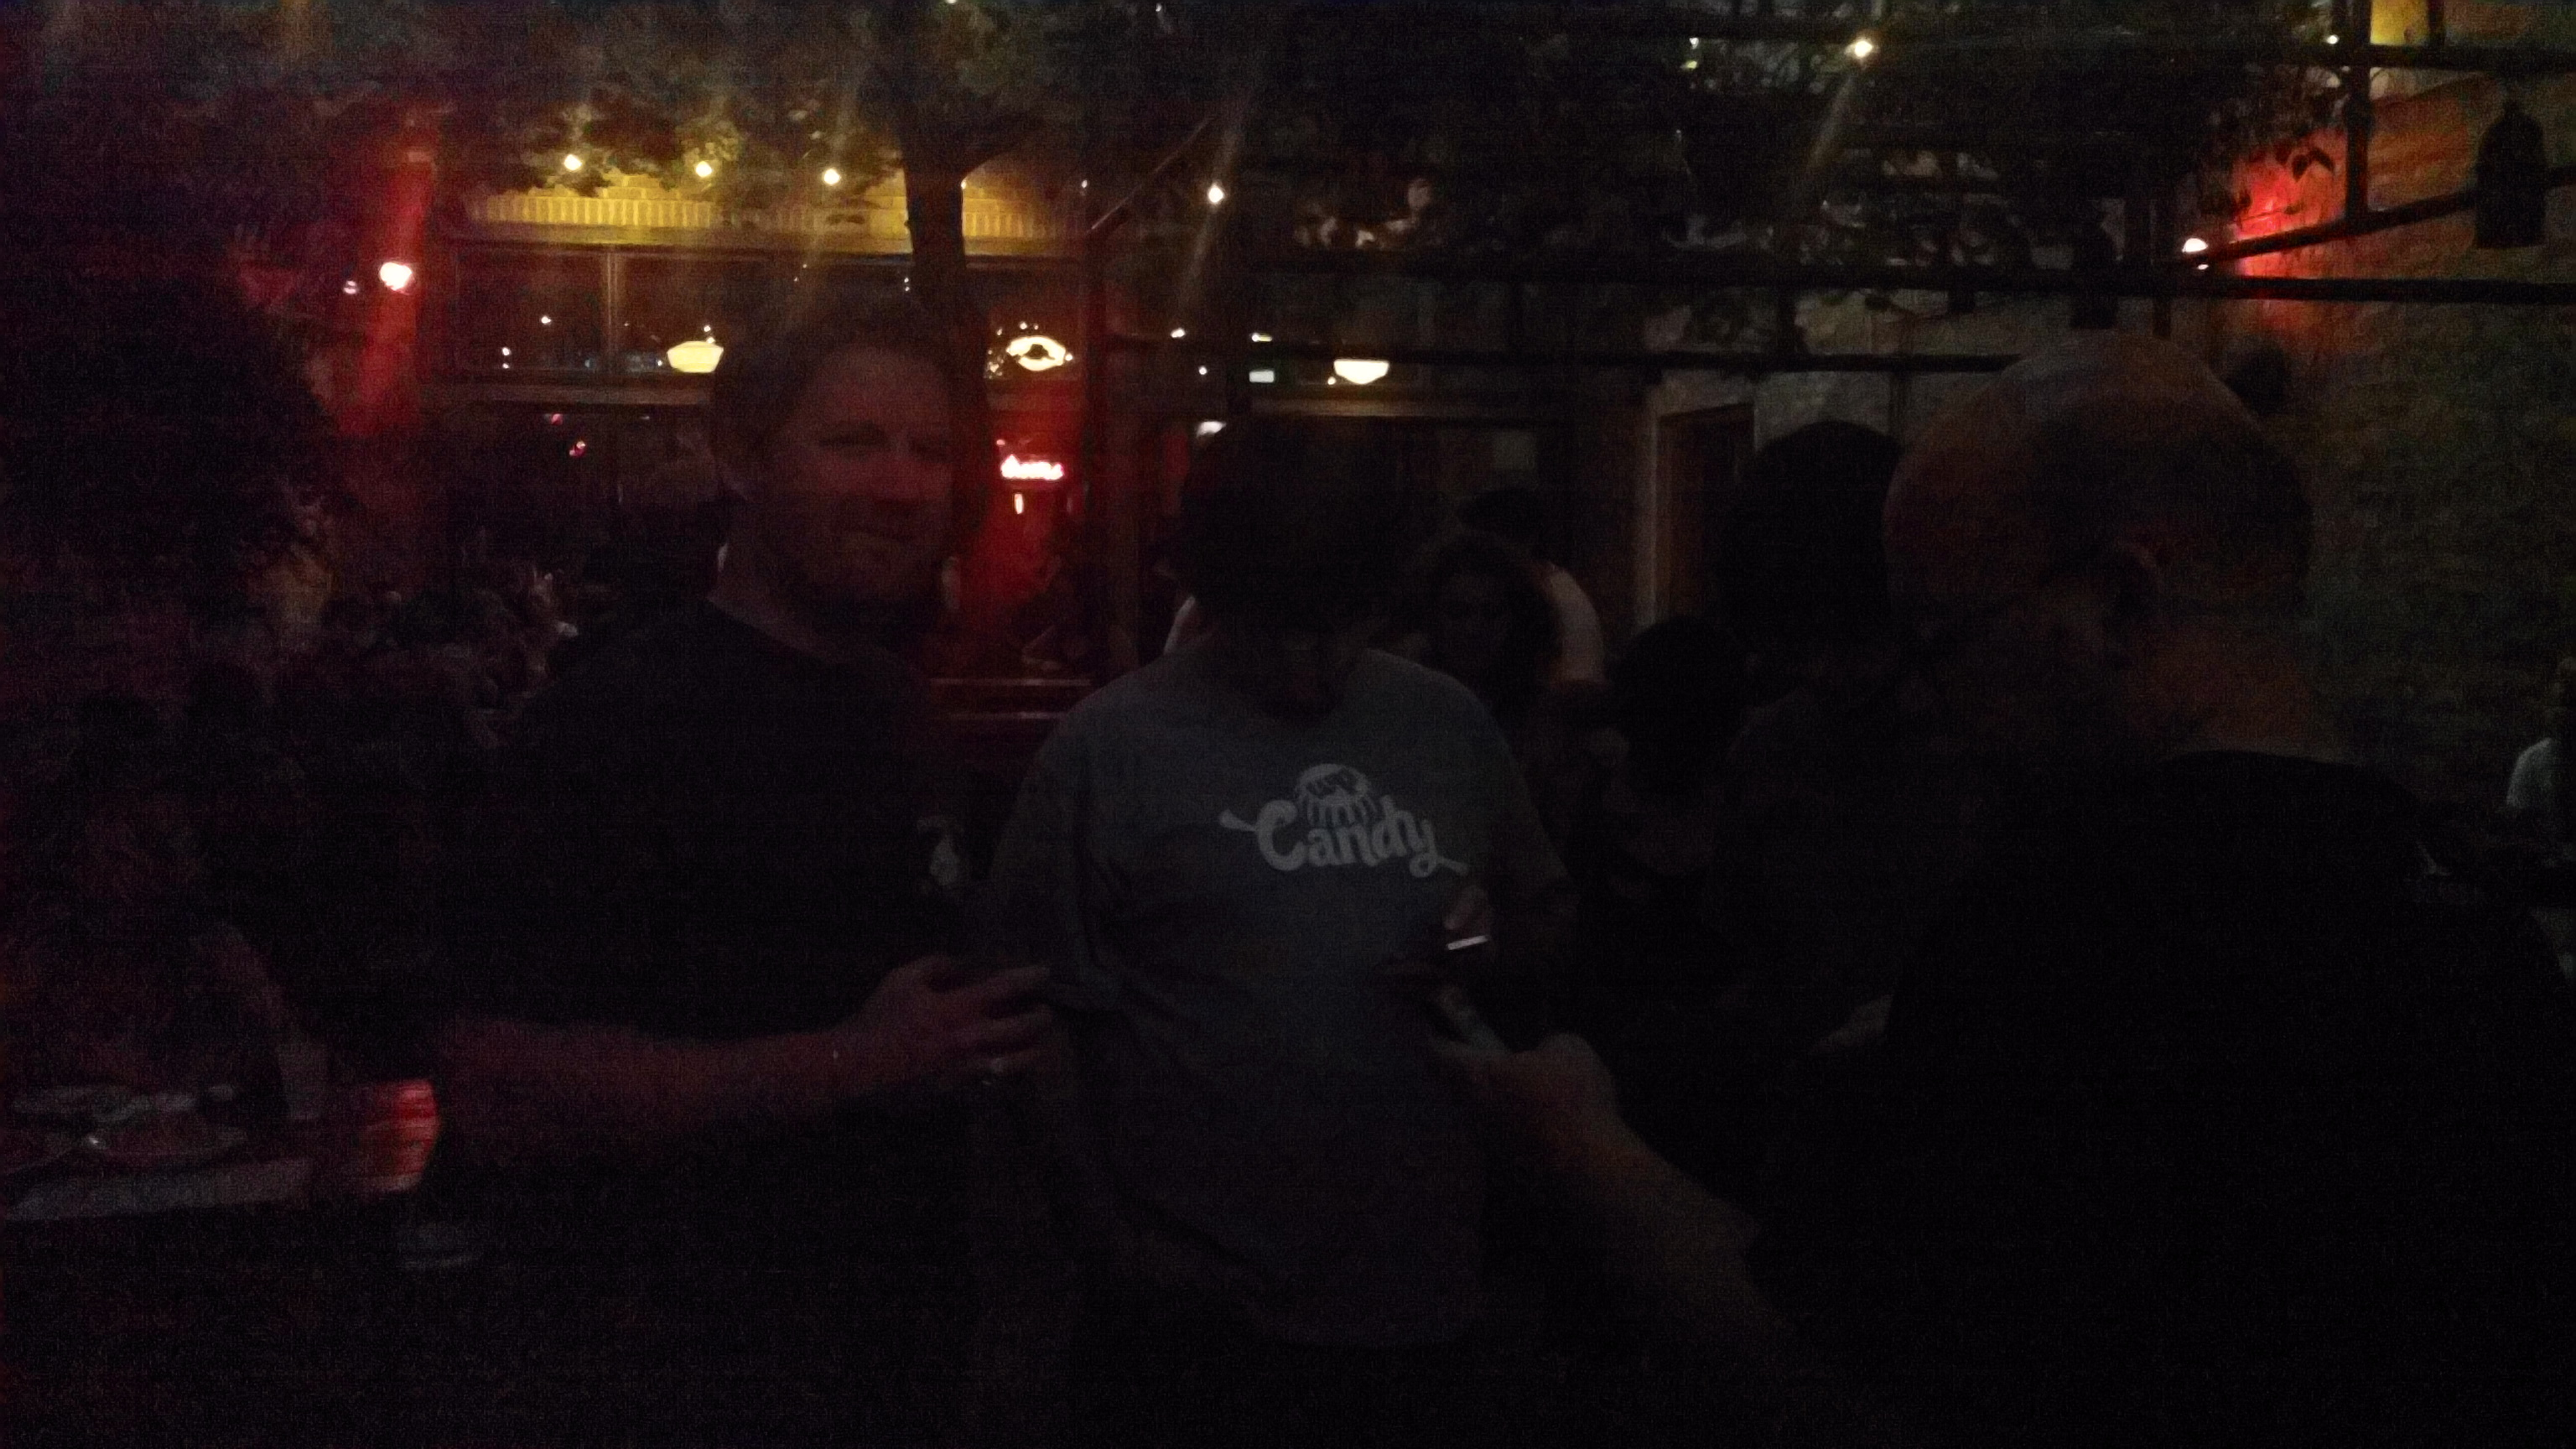 Dark shot of people standing around a beer garden looking at their phones